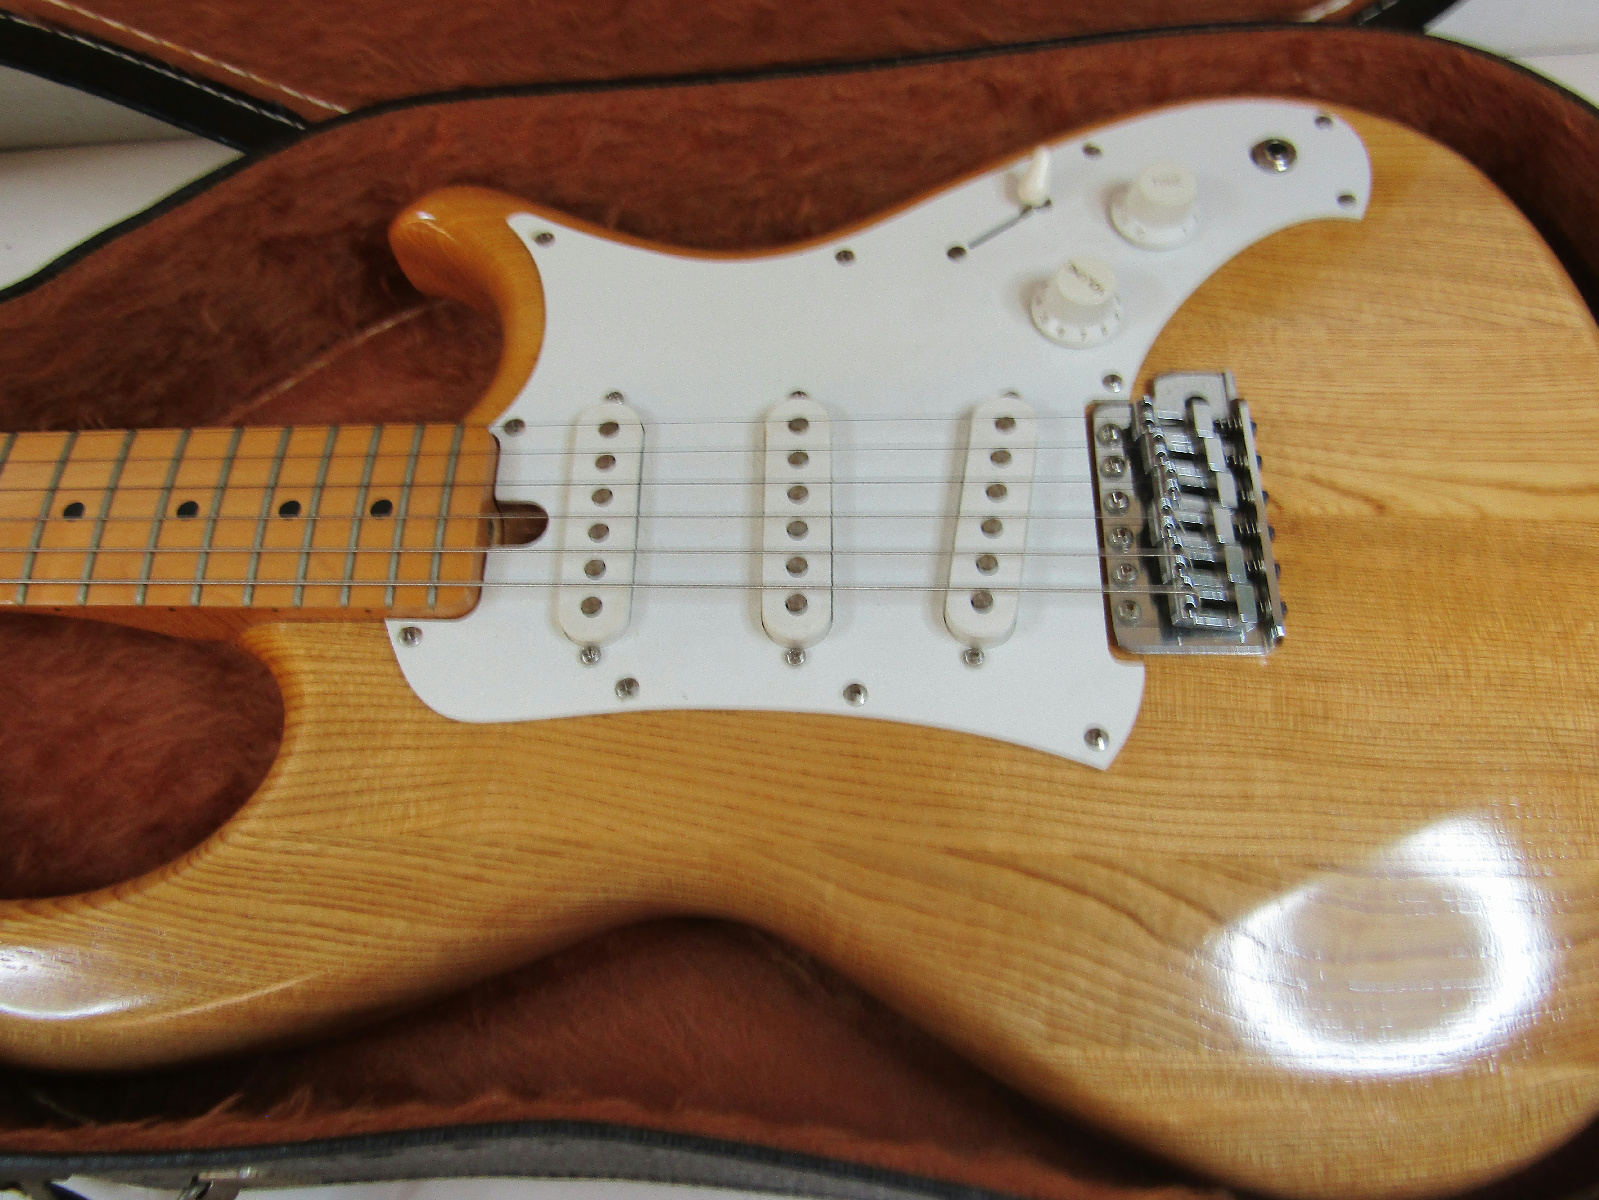 aria pro 2 rs series electric guitar strat type wood finish hard case ebay